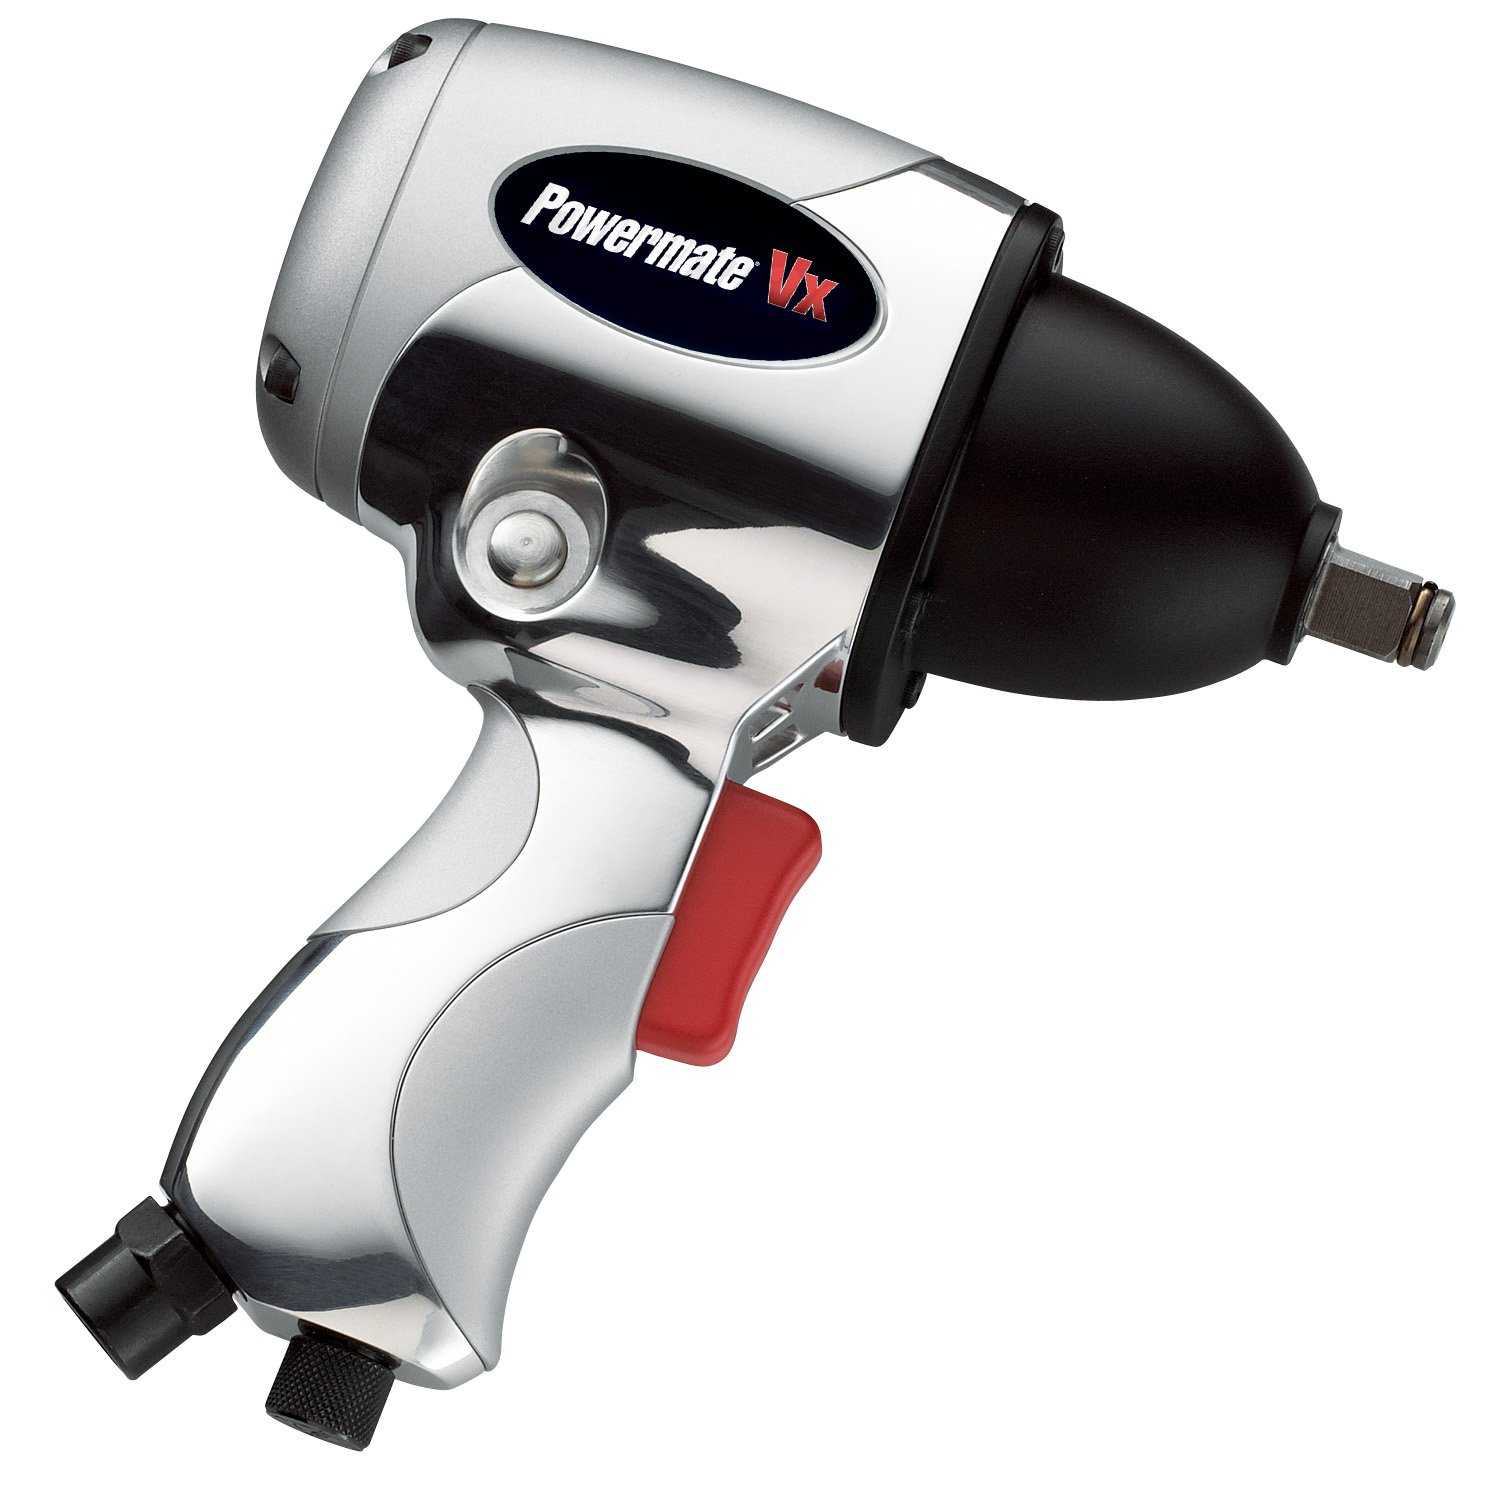 PowerMate Vx 0240077CT Air Impact Wrench, 1/2'' by Powermate Vx (Image #1)